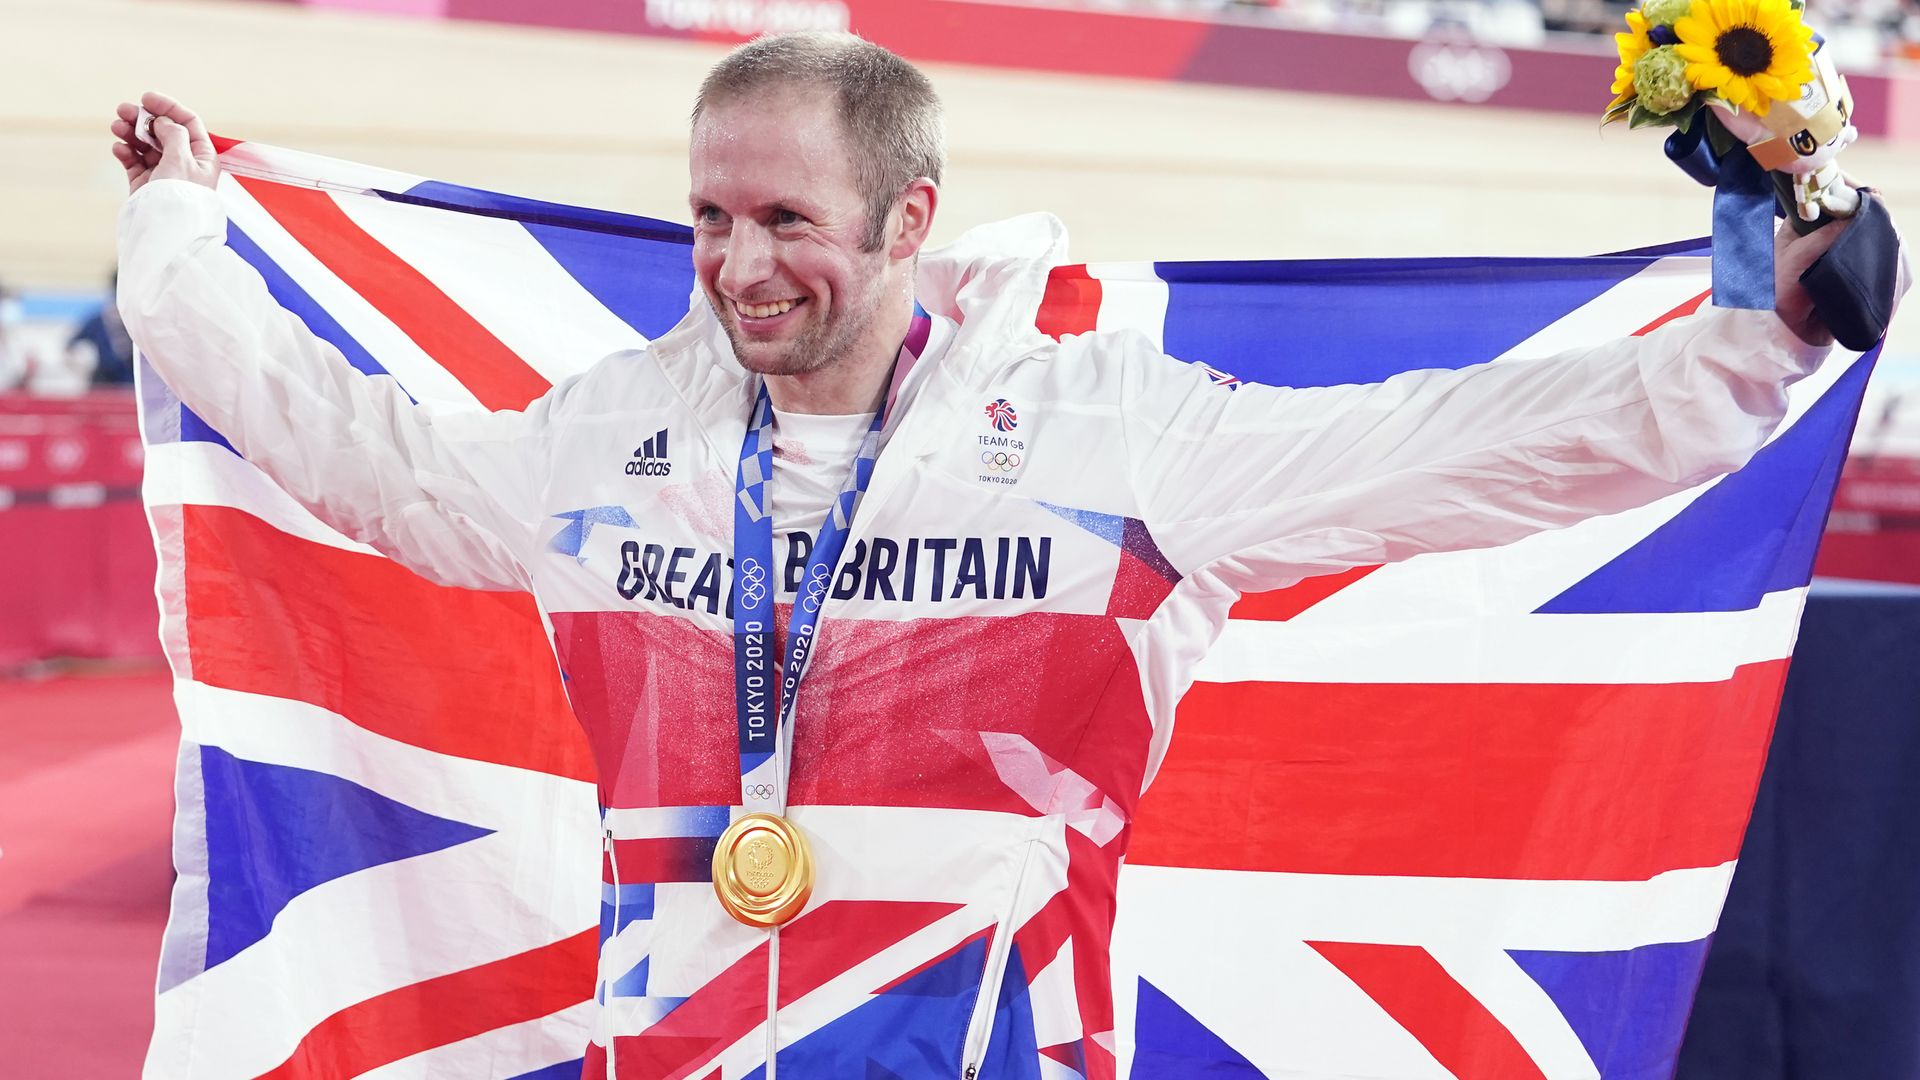 Kenny wins gold to become most successful GB Olympian